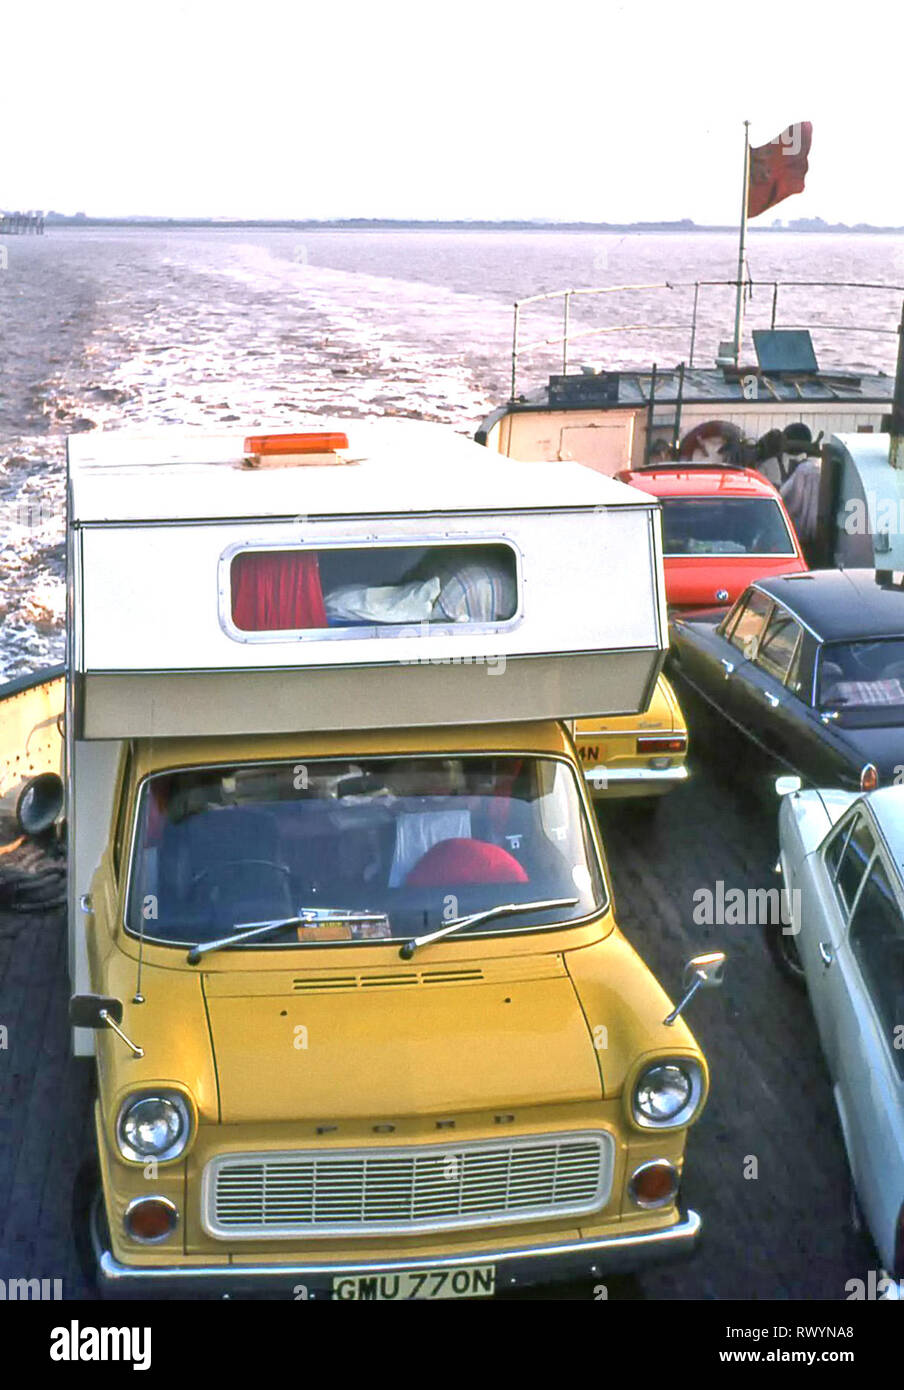 Purpose made RV camper van motorhome built 1970s on yellow Ford Transit chassis loaded on Scottish Highlands car ferry family touring holiday 1974 UK - Stock Image